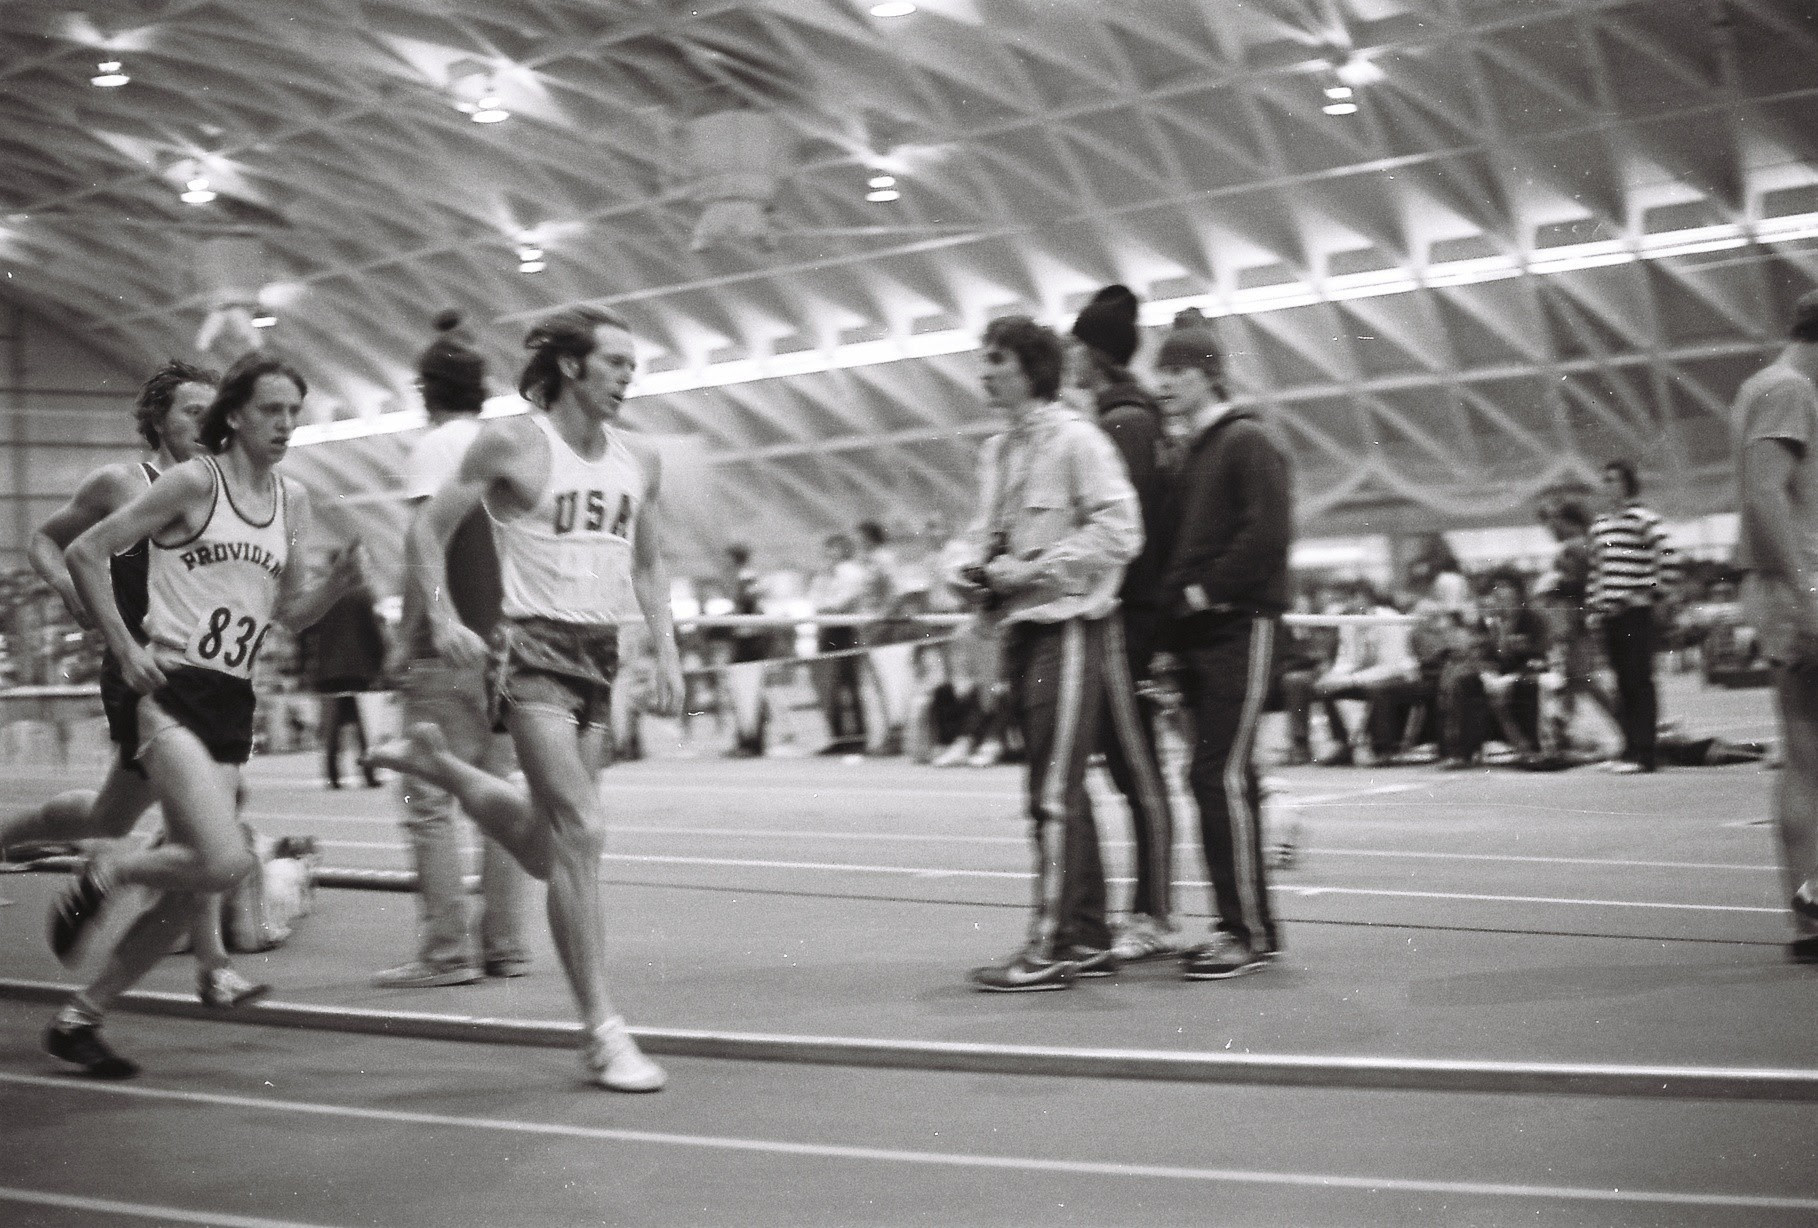 Indoors Pic Quote 2 New Hampshire Track And Field